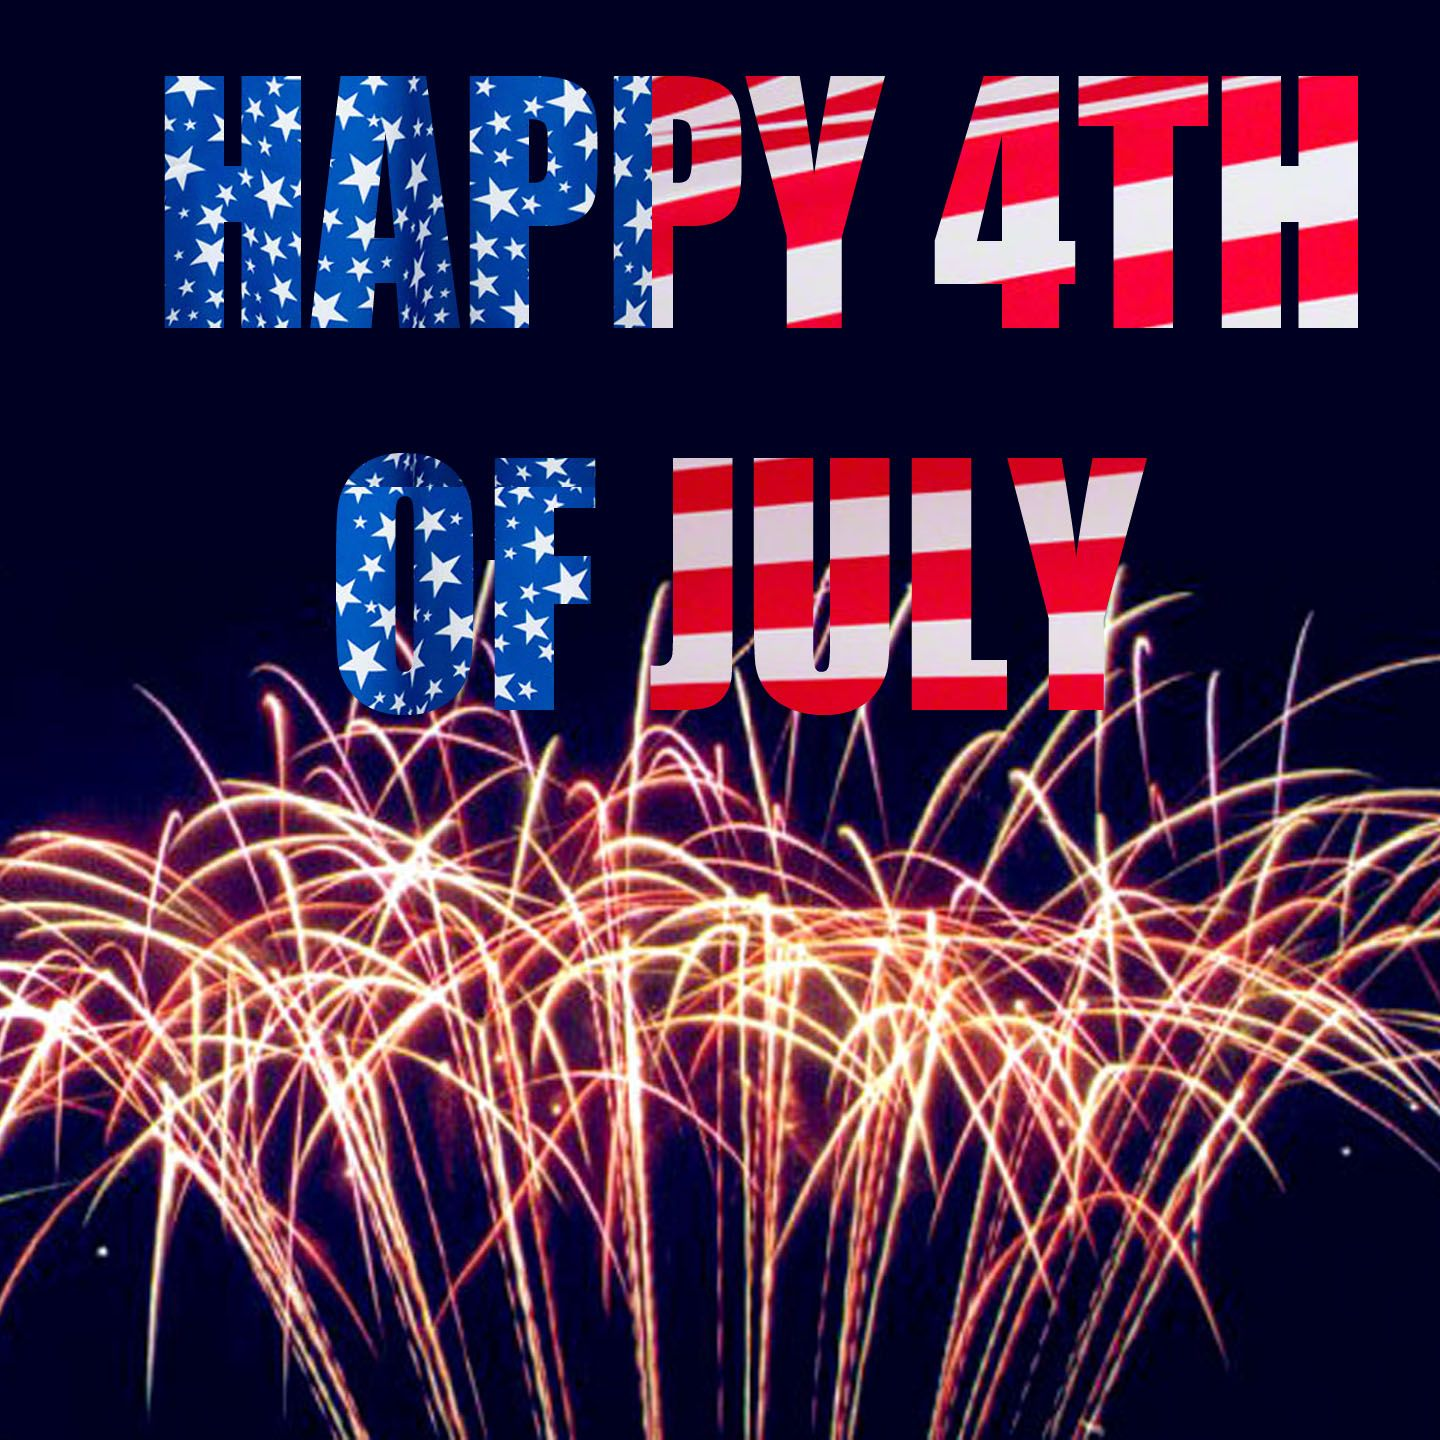 Download The Best Collection Of Fourth Of July Wishes 2015 Images